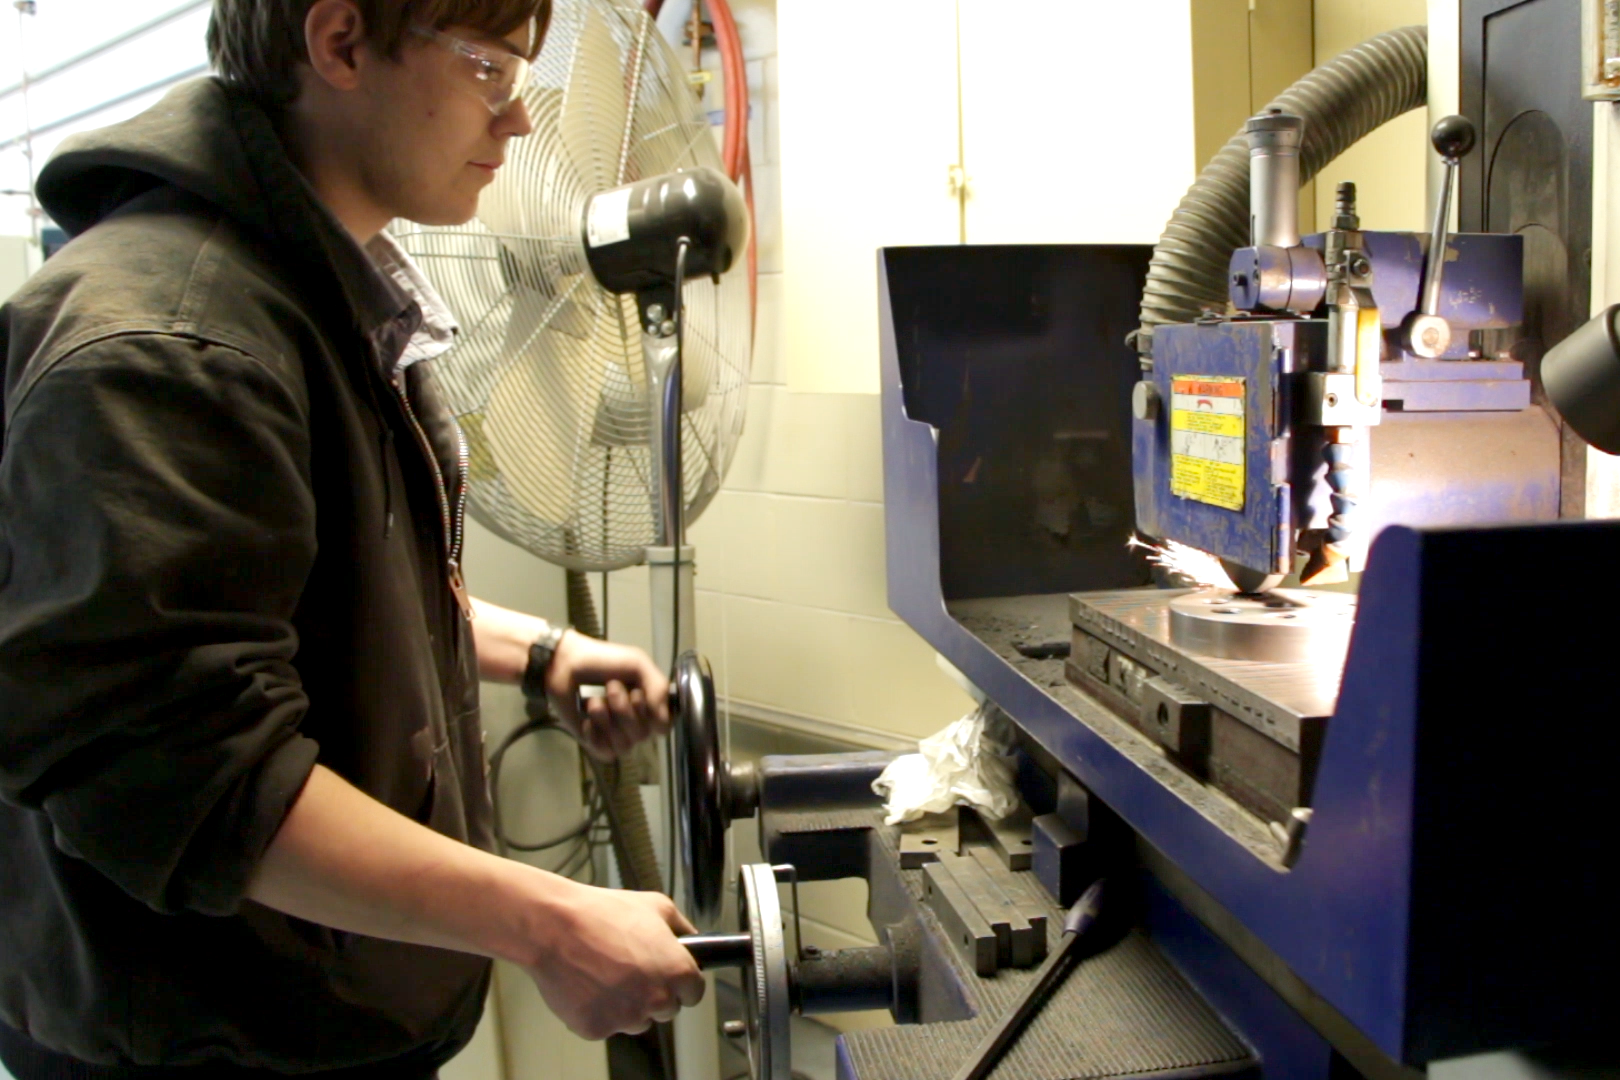 A student operating a machine